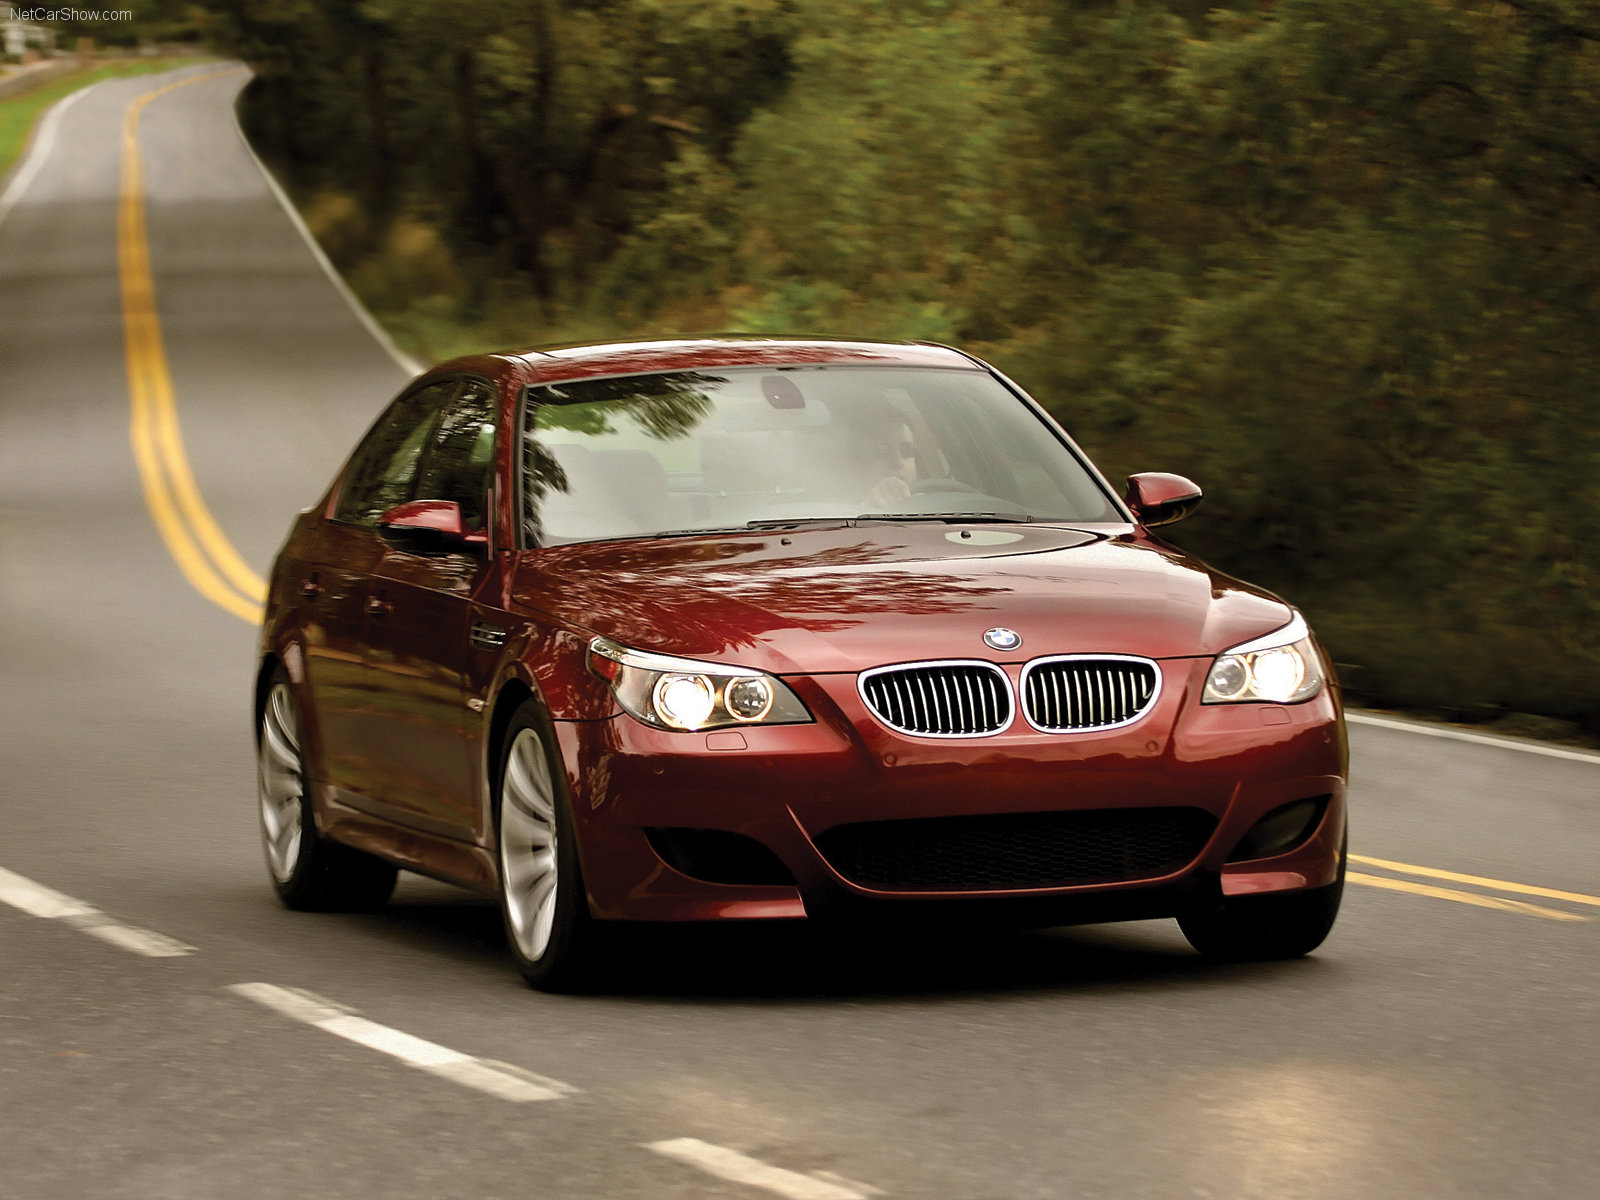 bmw m5 e60 picture 39544 bmw photo gallery. Black Bedroom Furniture Sets. Home Design Ideas